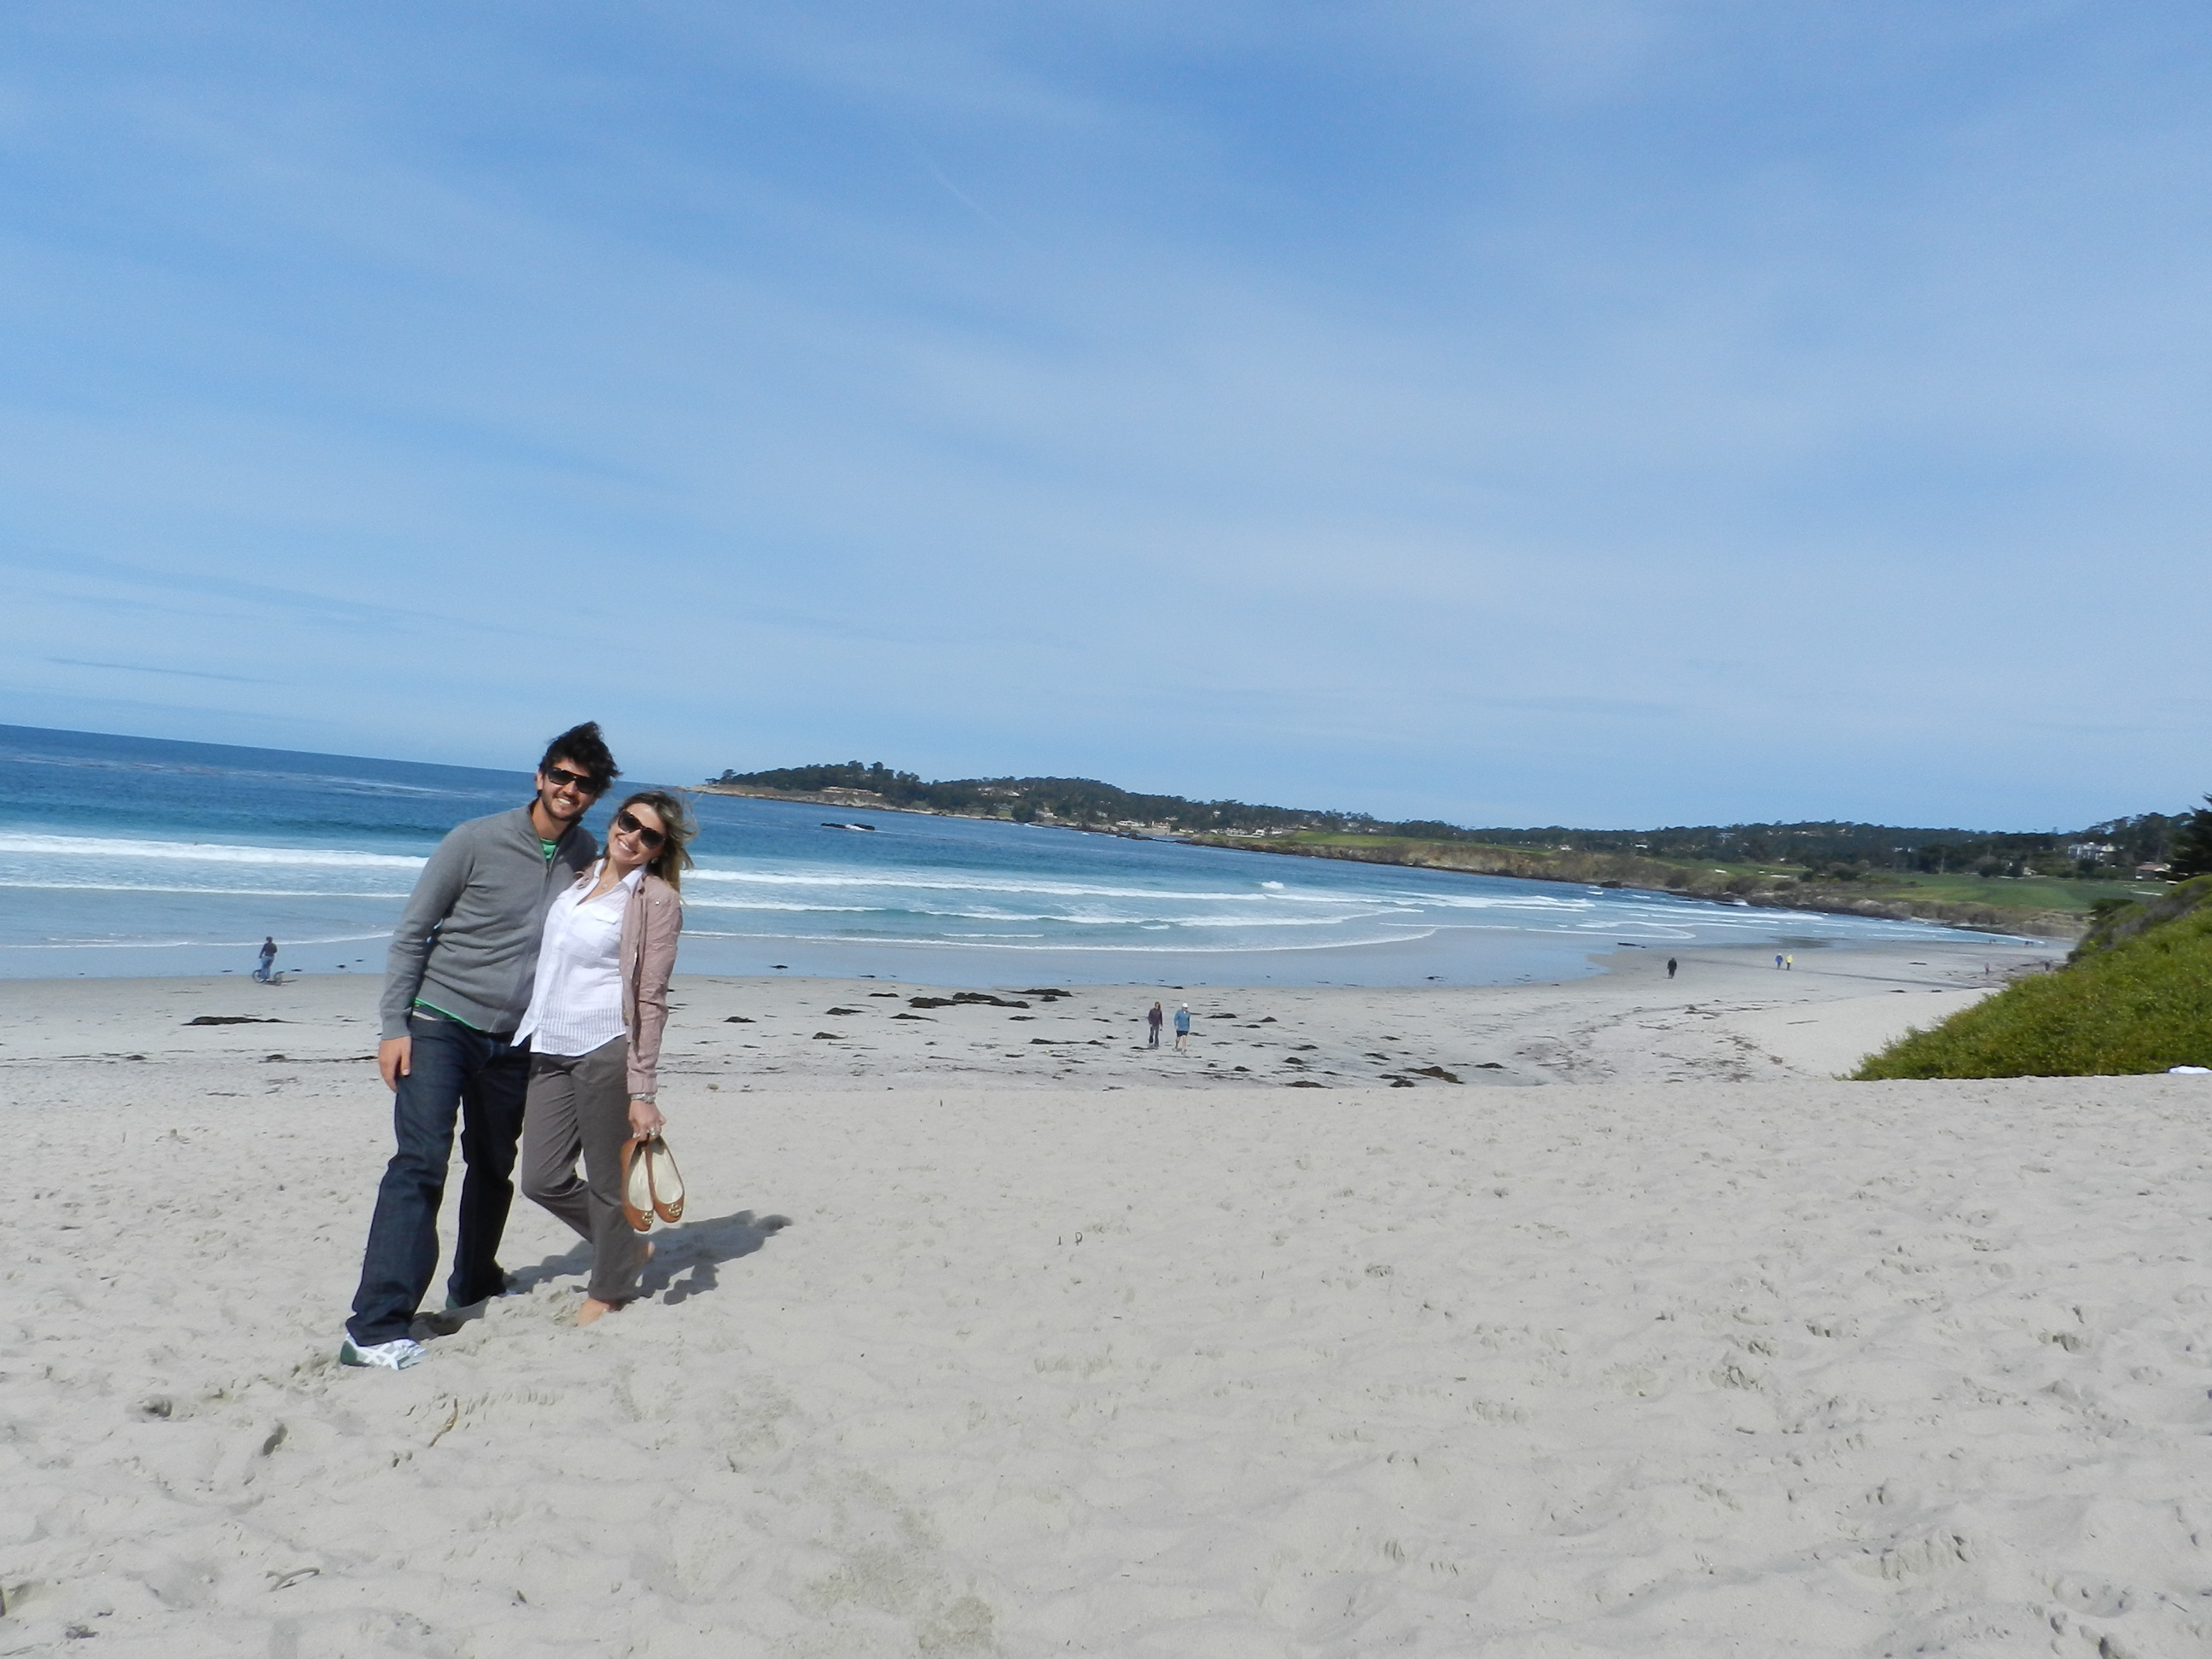 Carmel by the sea - highway 1 california dicas - praia beach